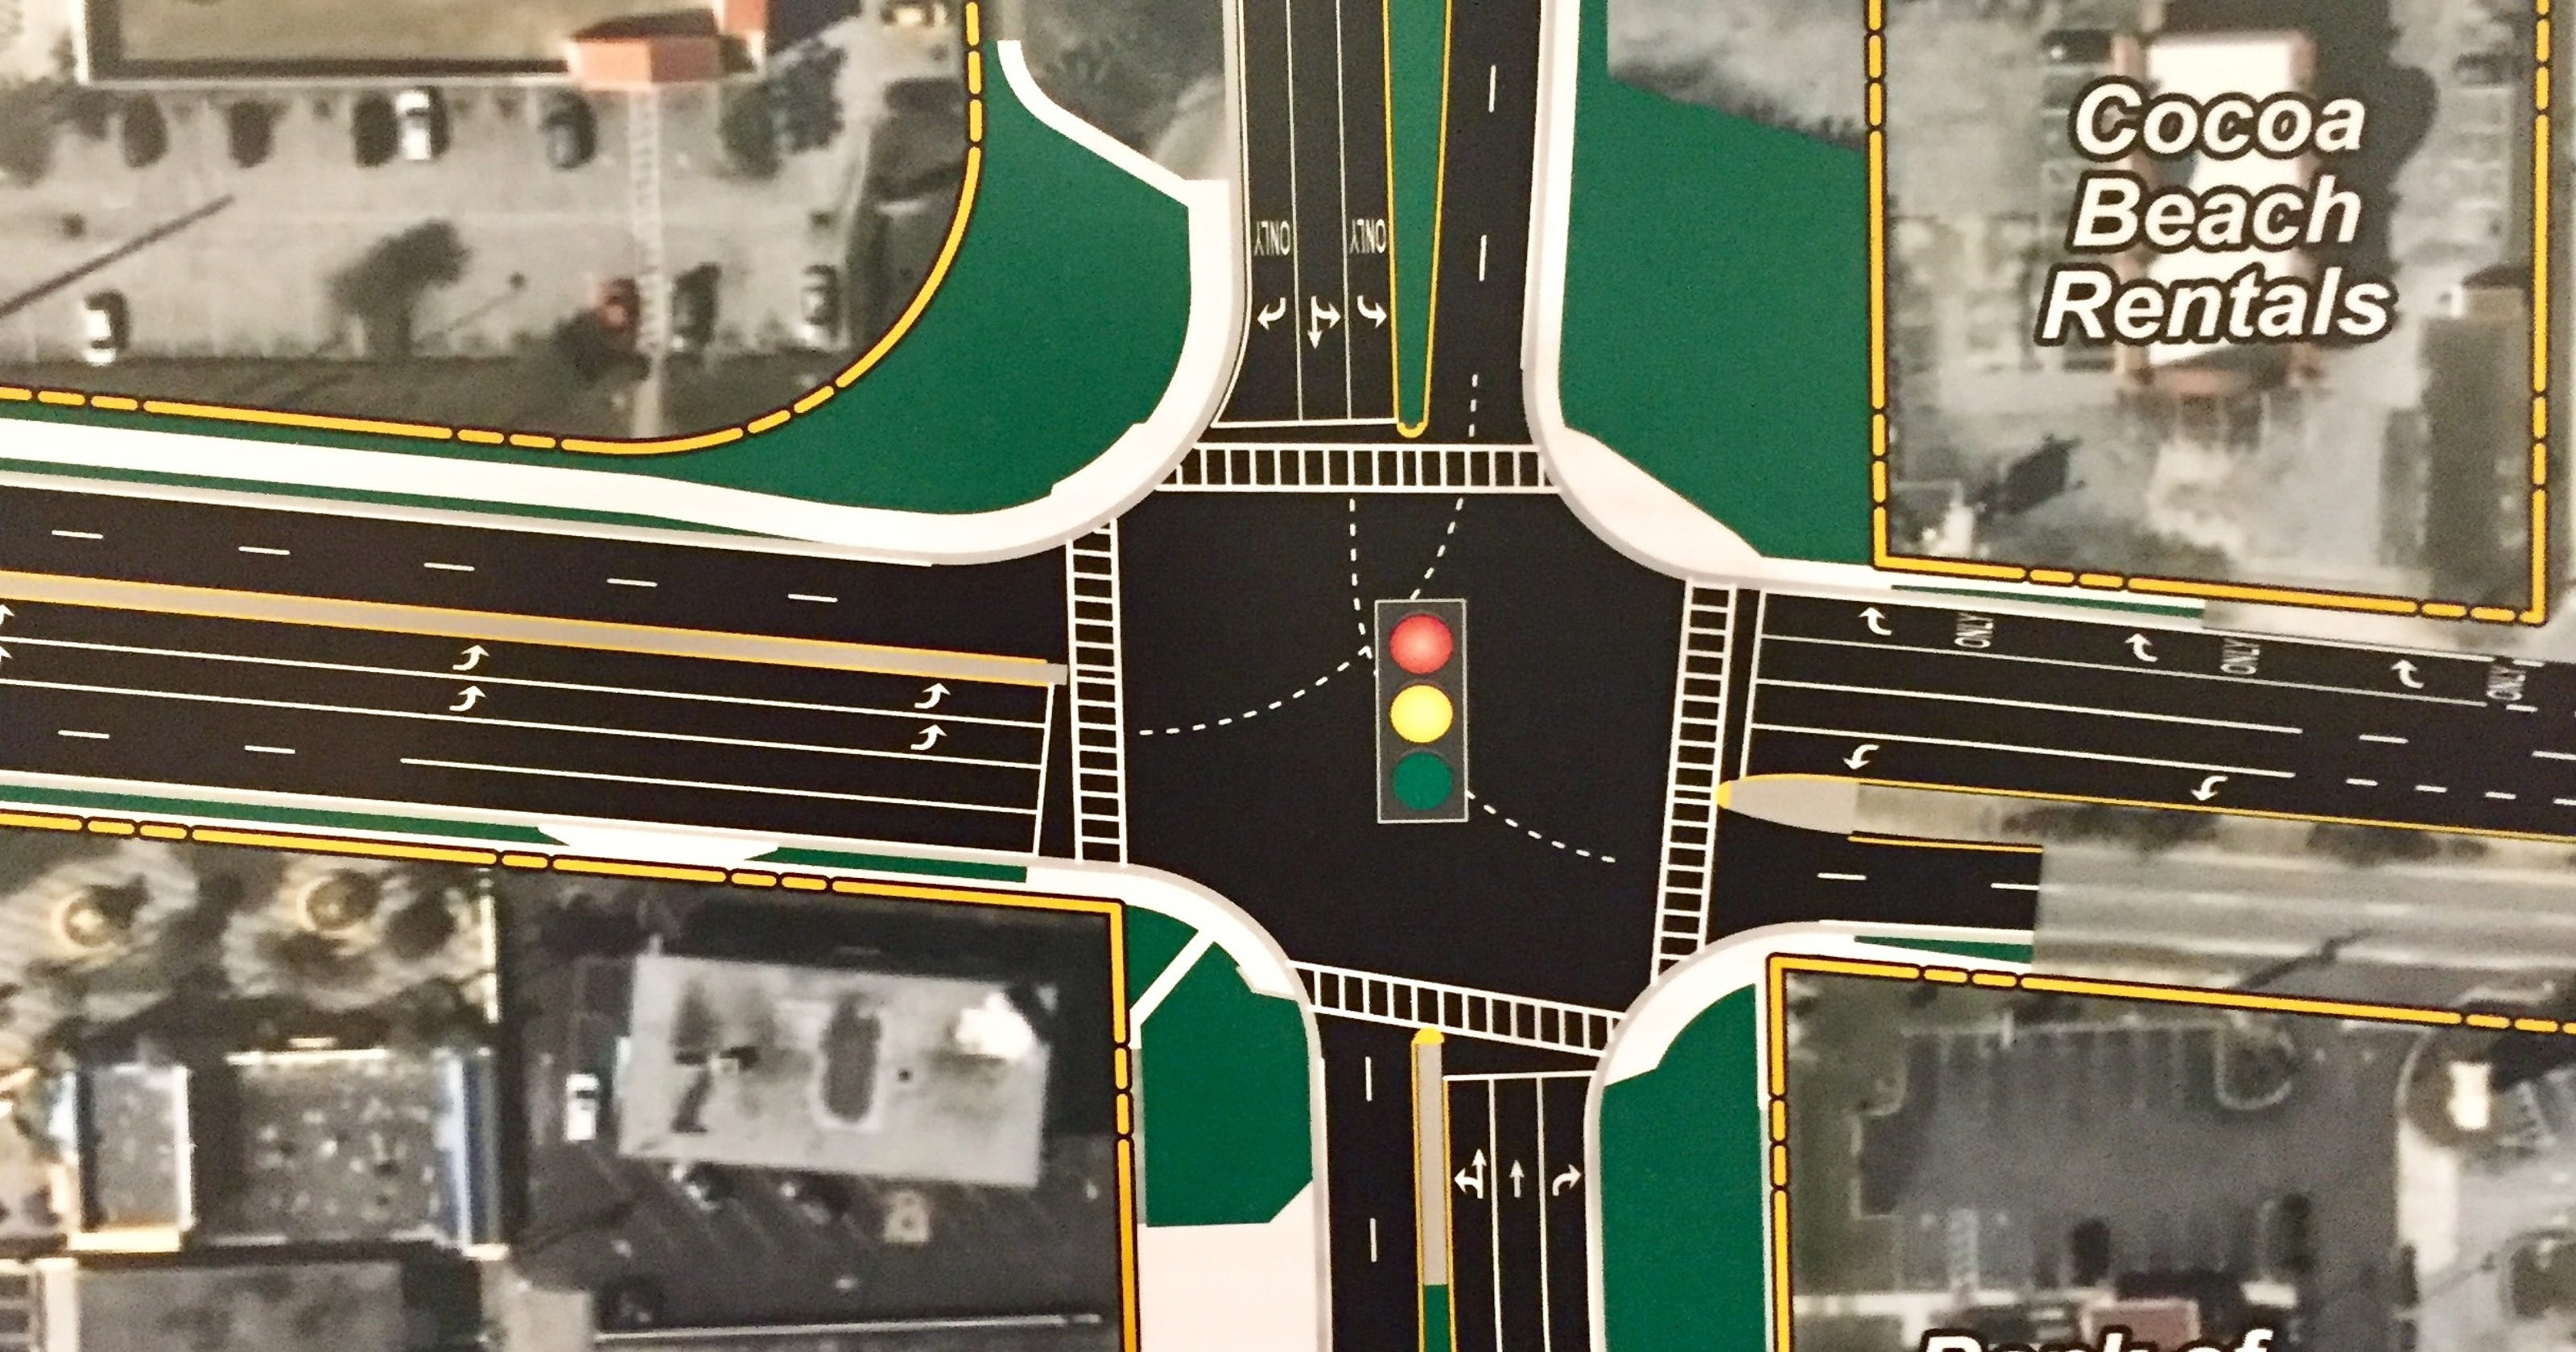 Congested Cocoa Beach SR A1A-520 intersection may get an update on map of eastport, map of long key, map of wimauma, map of howey in the hills, map of wheat, map of oak hill, map of big coppitt key, map of north redington shores, map of sun city center, map of lake panasoffkee, map of sebastian inlet state park, map of melbourne beach, map of vero lake estates, map of platinum, map of rotonda, map of callaway, map of citrus, map of cassadaga, map of casselberry, map of shalimar,